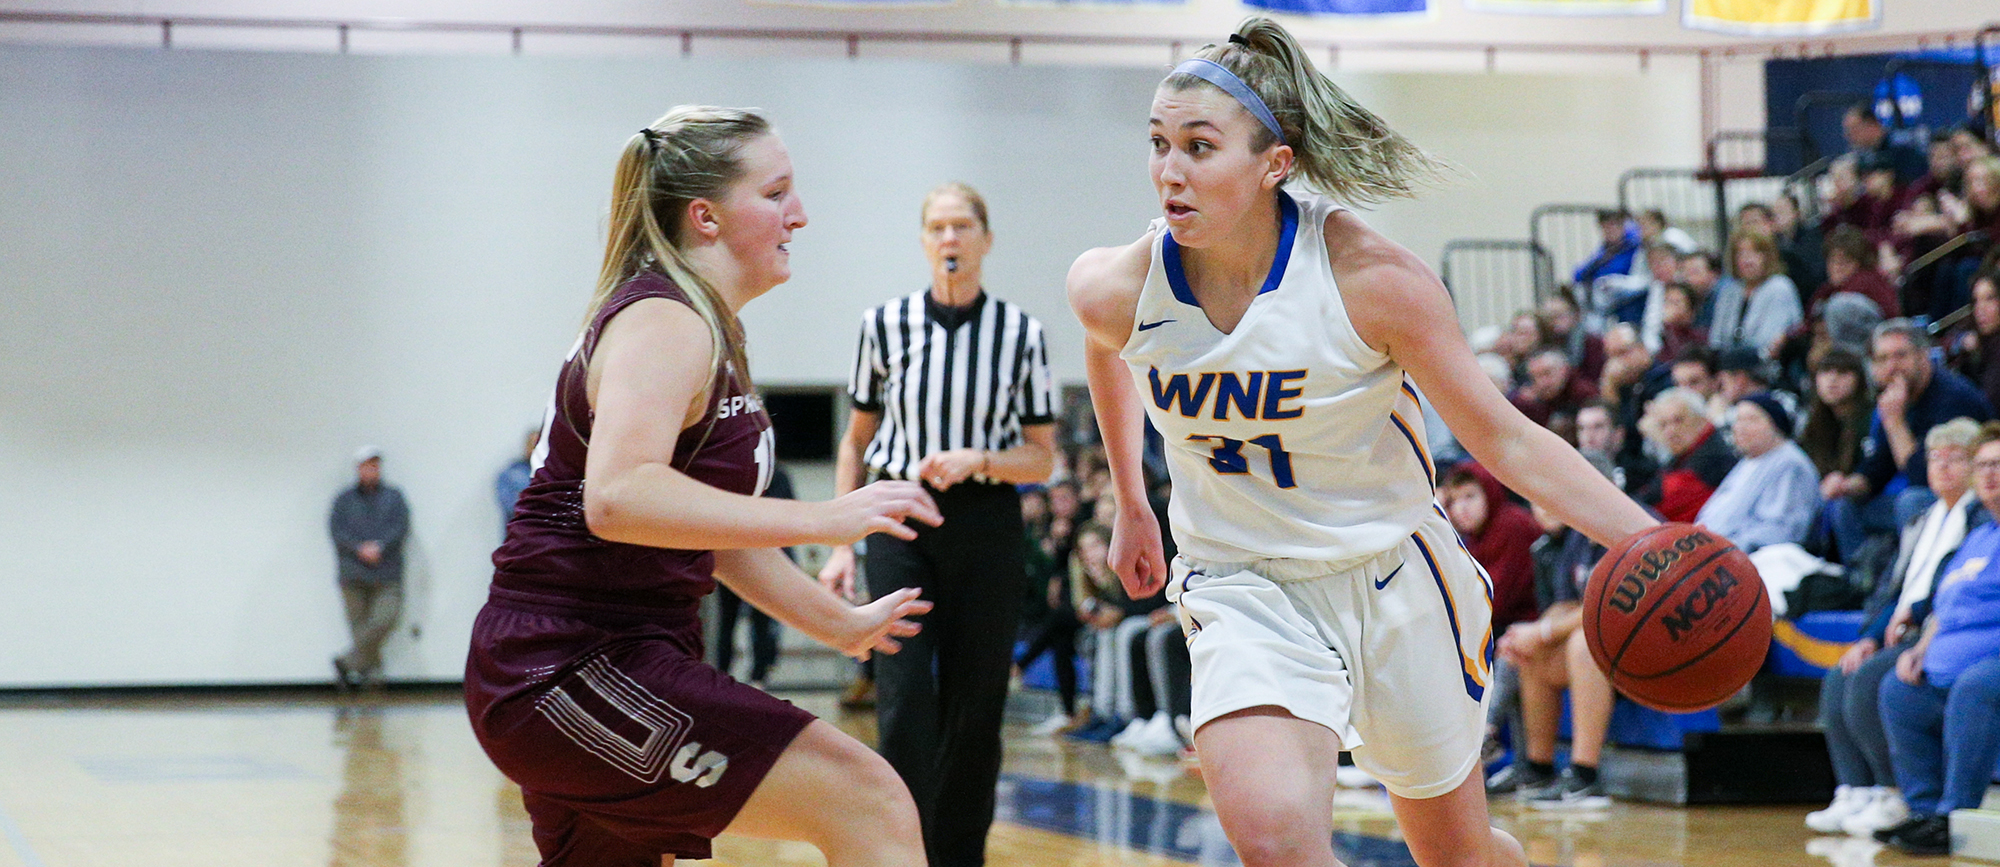 Junior Meghan Orbann finished with 11 points & seven rebounds in Western New England's 66-54 loss to Worcester State on Tuesday. (Photo by Chris Marion)